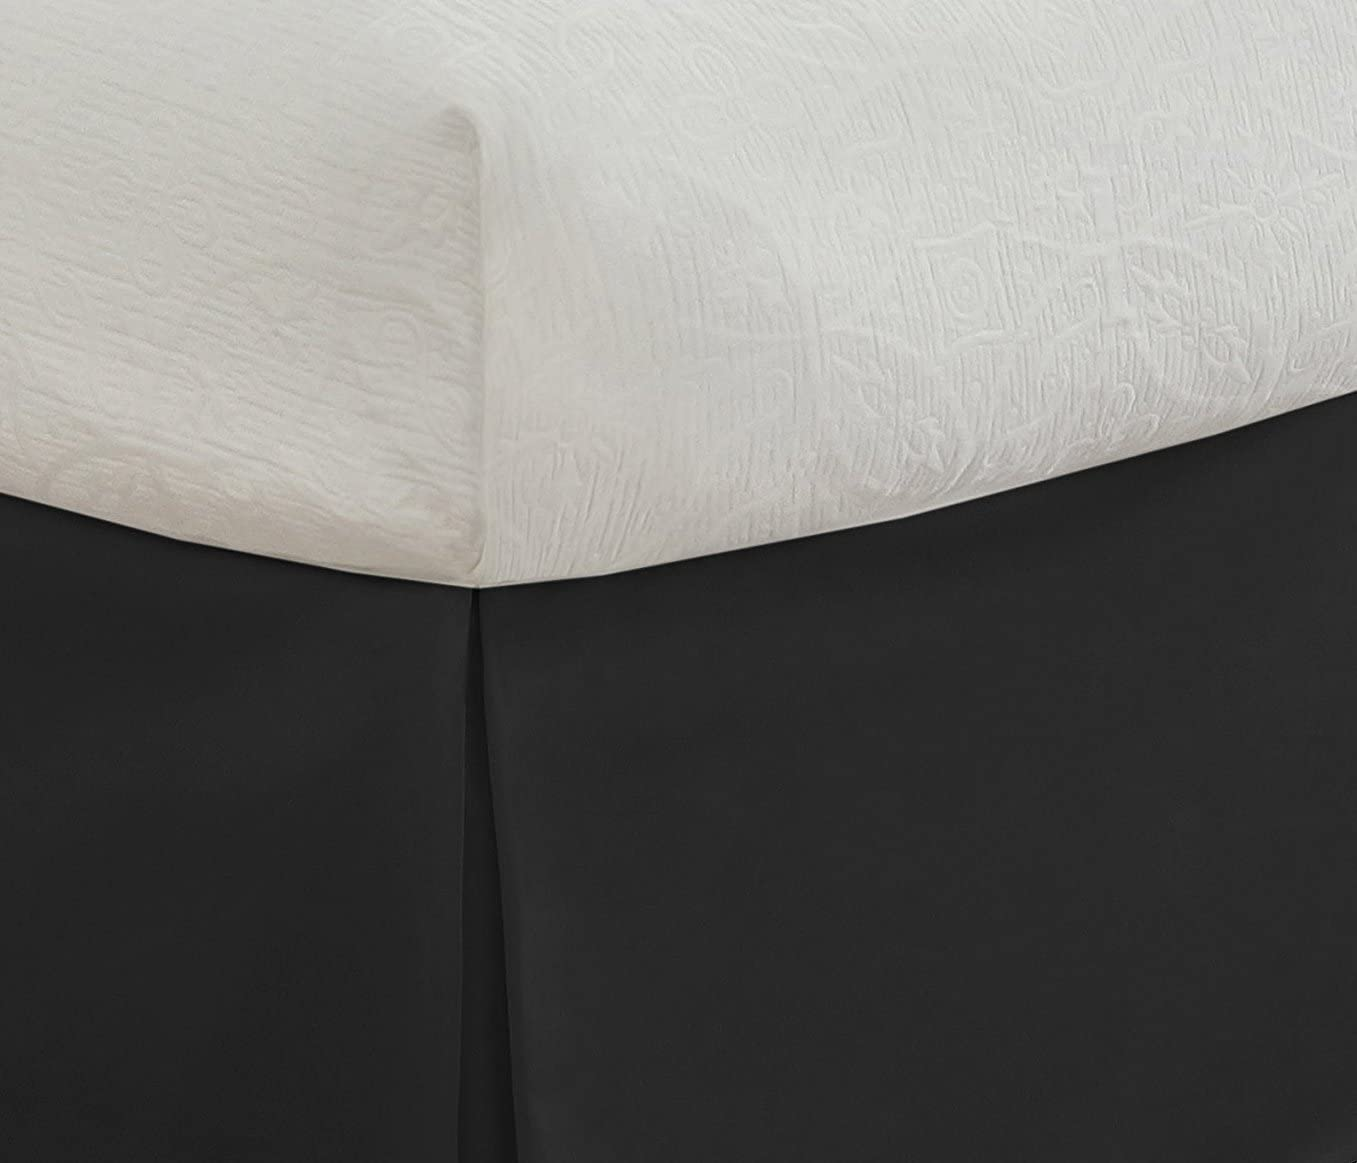 Lux Hotel Tailored Bed Skirt Classic 14 Drop Length Pleated Styling Black Twin XL